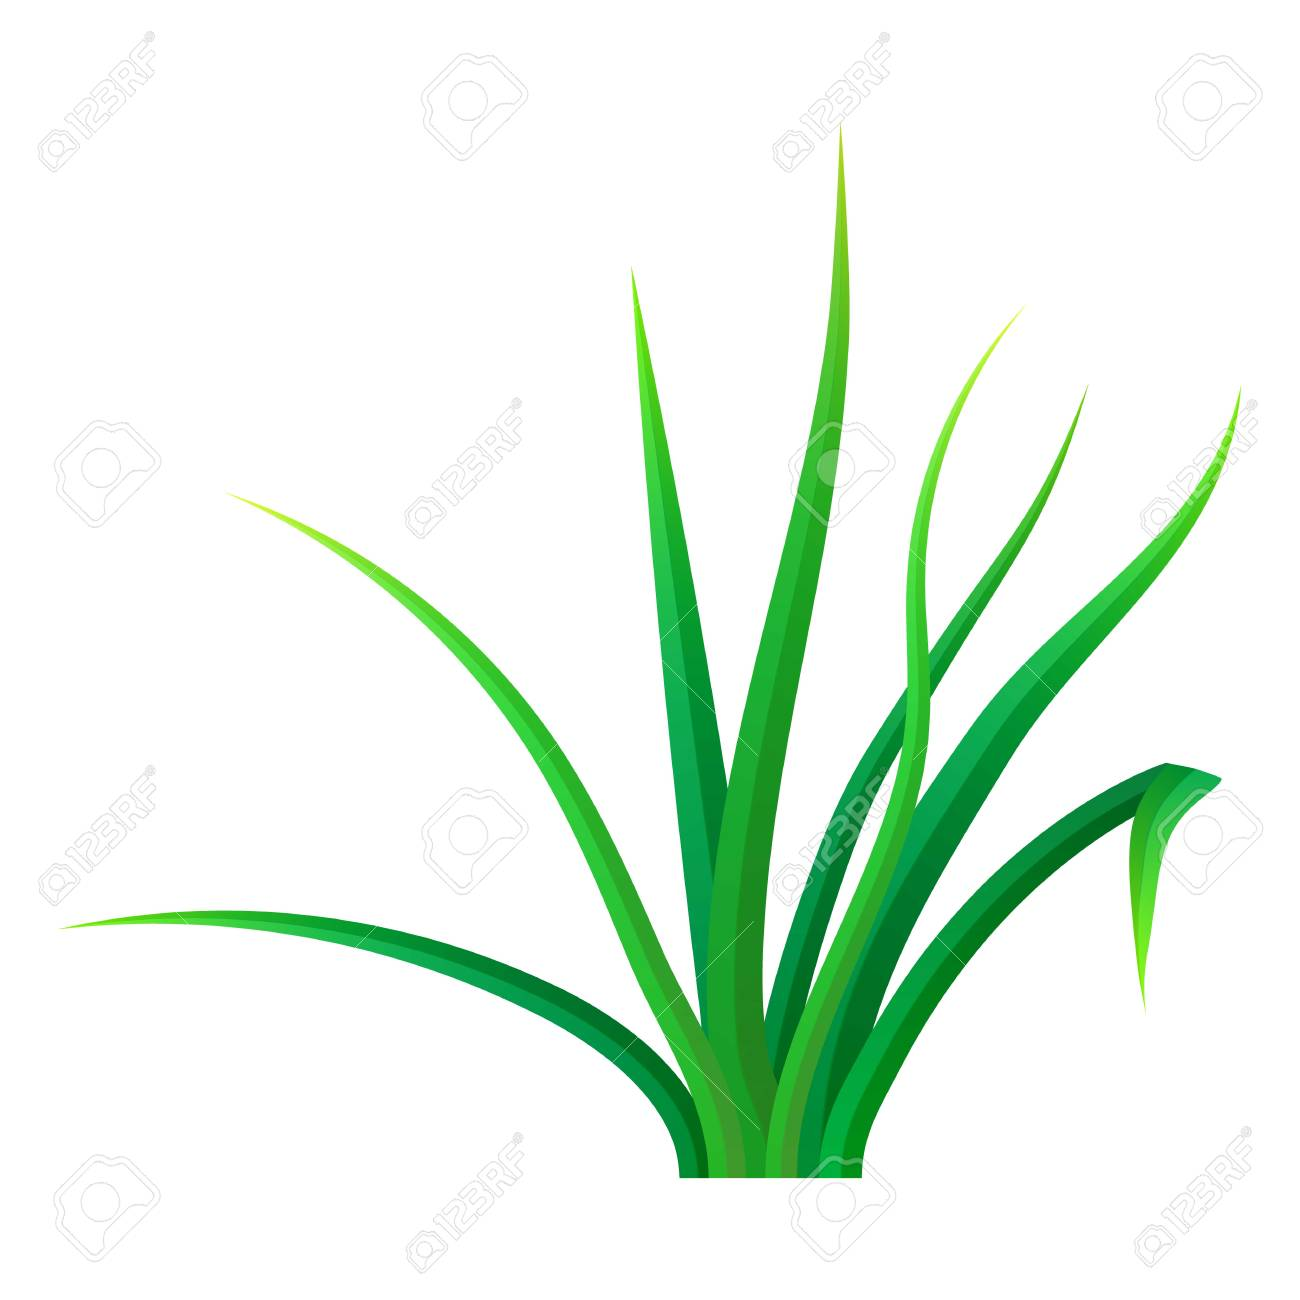 small bunch grass icon realistic illustration of small bunch royalty free cliparts vectors and stock illustration image 98420244 small bunch grass icon realistic illustration of small bunch